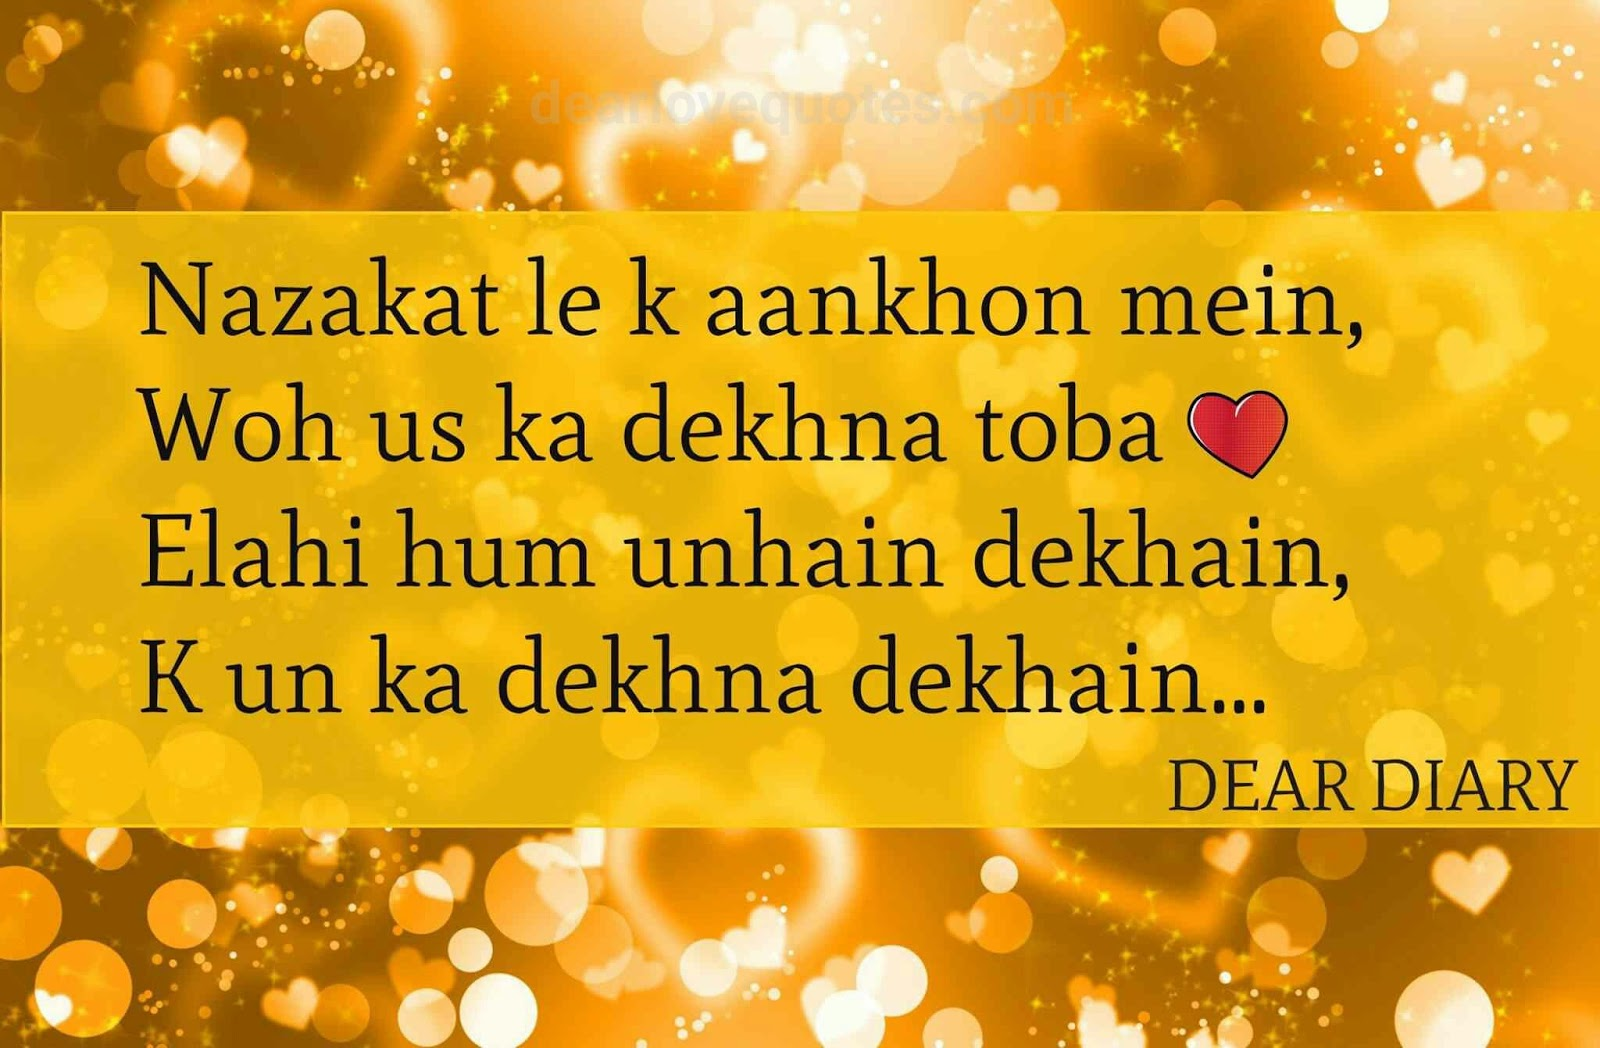 20 dear diary images with love quotes shayari and status